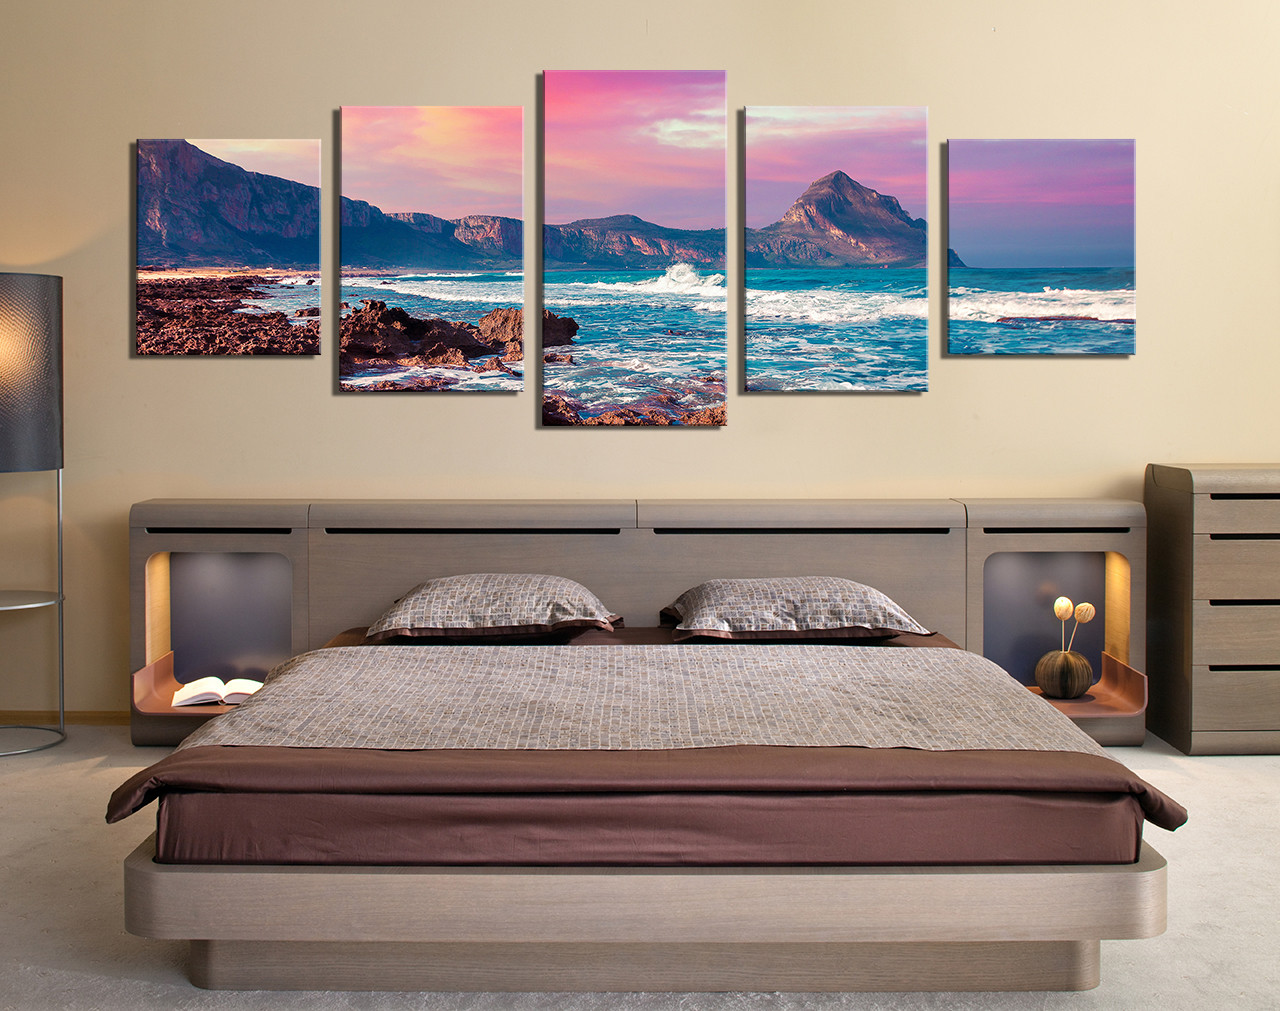 5 piece canvas wall art bedroom canvas photography mountain artwork landscape large pictures - Multi Frame Wall Art